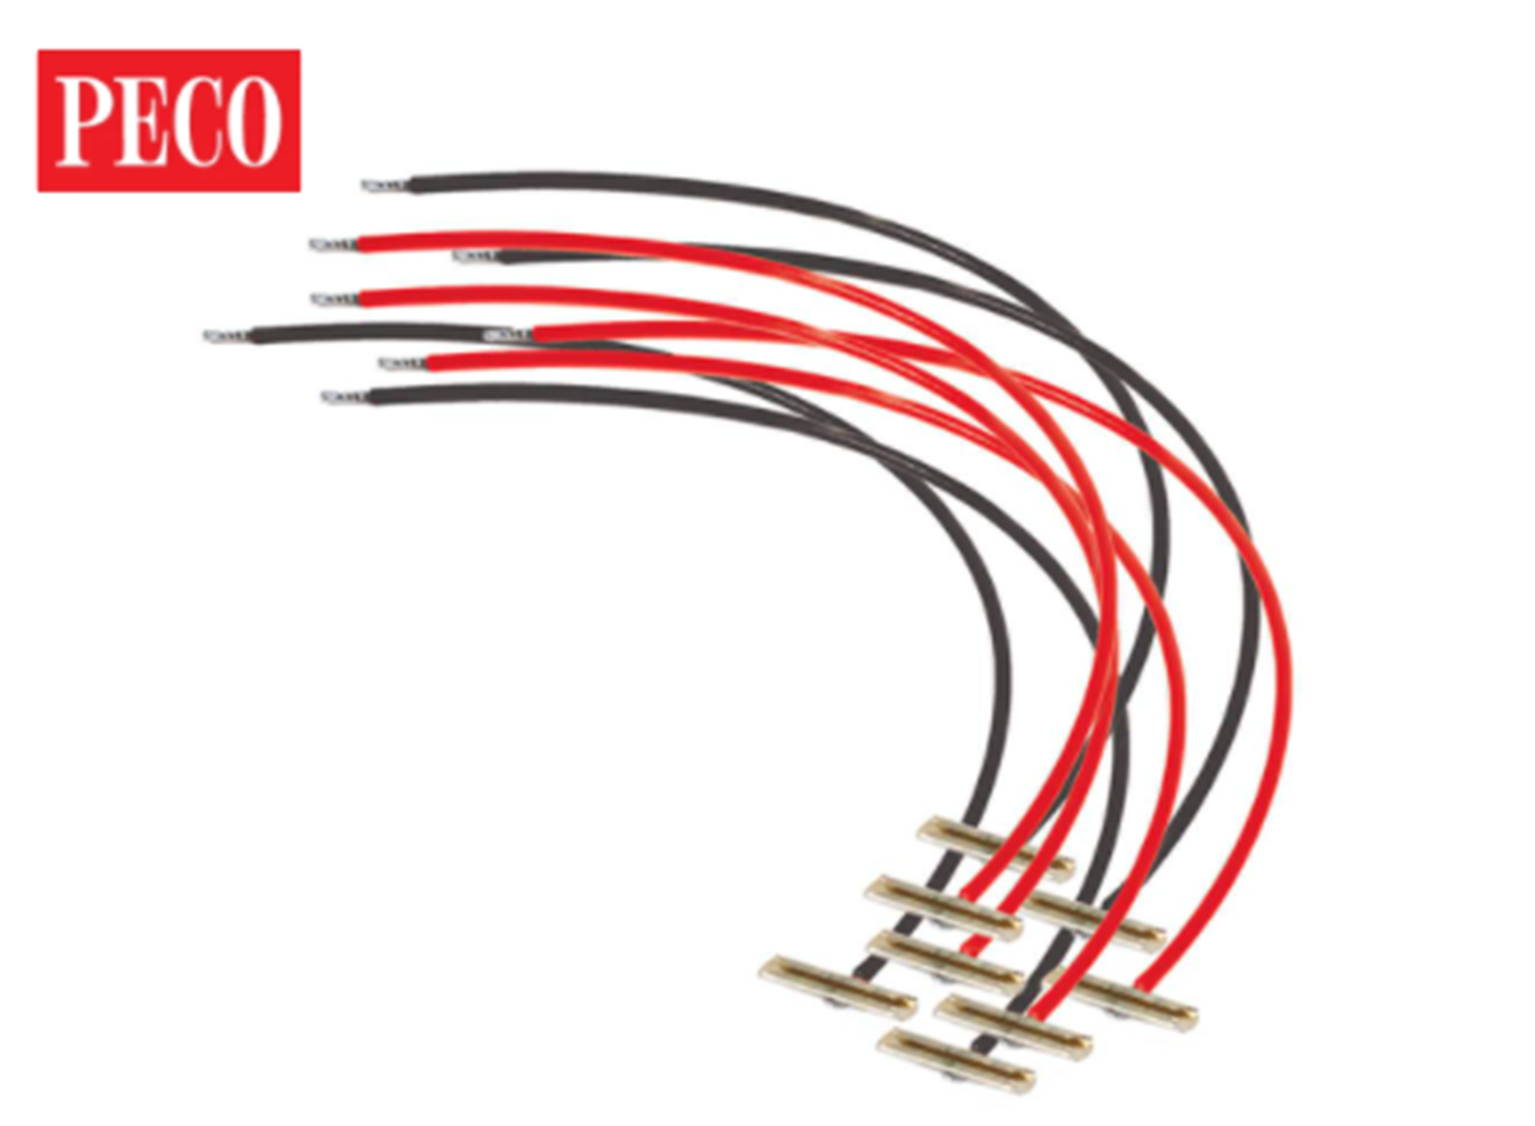 Power Feed Joiners for Code 70/75/83 track